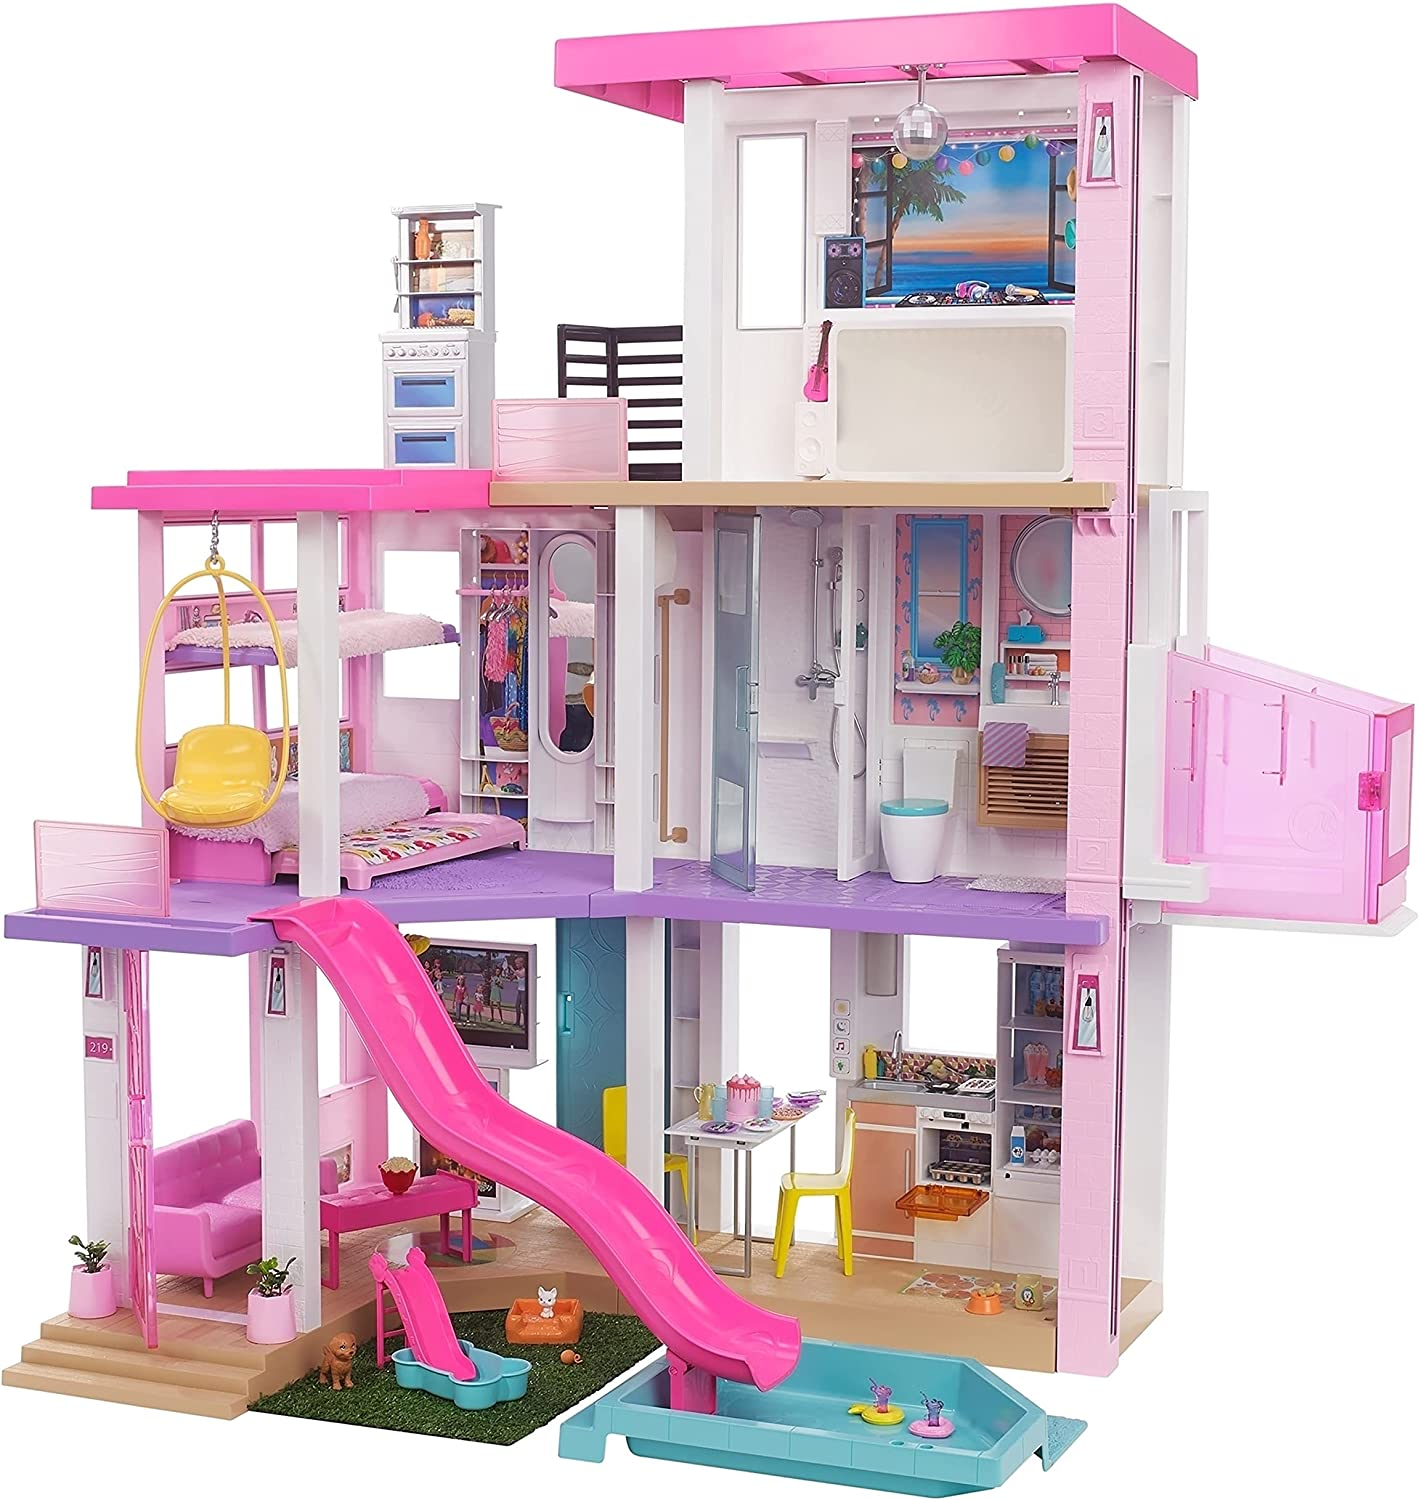 Barbie Dreamhouse 3.75-ft Low price 3-Story with Playset Pool We OFFer at cheap prices Dollhouse